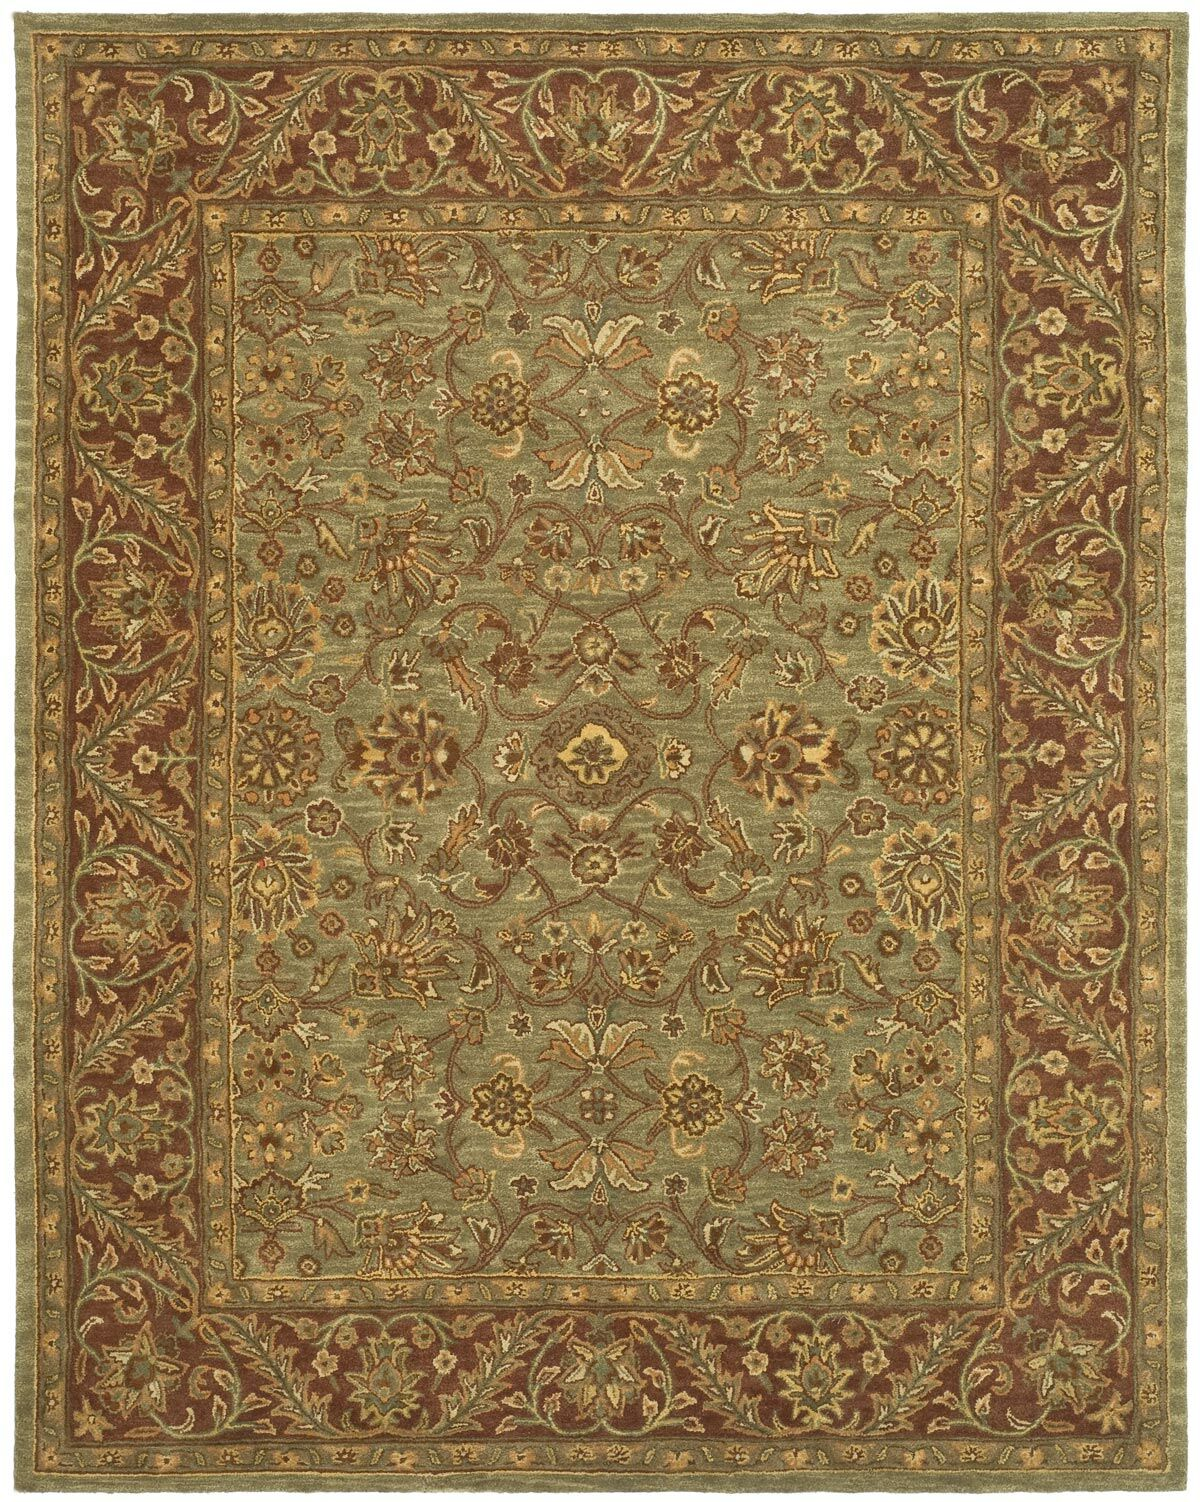 Jaipur Hand-Tufted Wool Green/Rust Area Rug Rug Size: Rectangle 11' x 15'